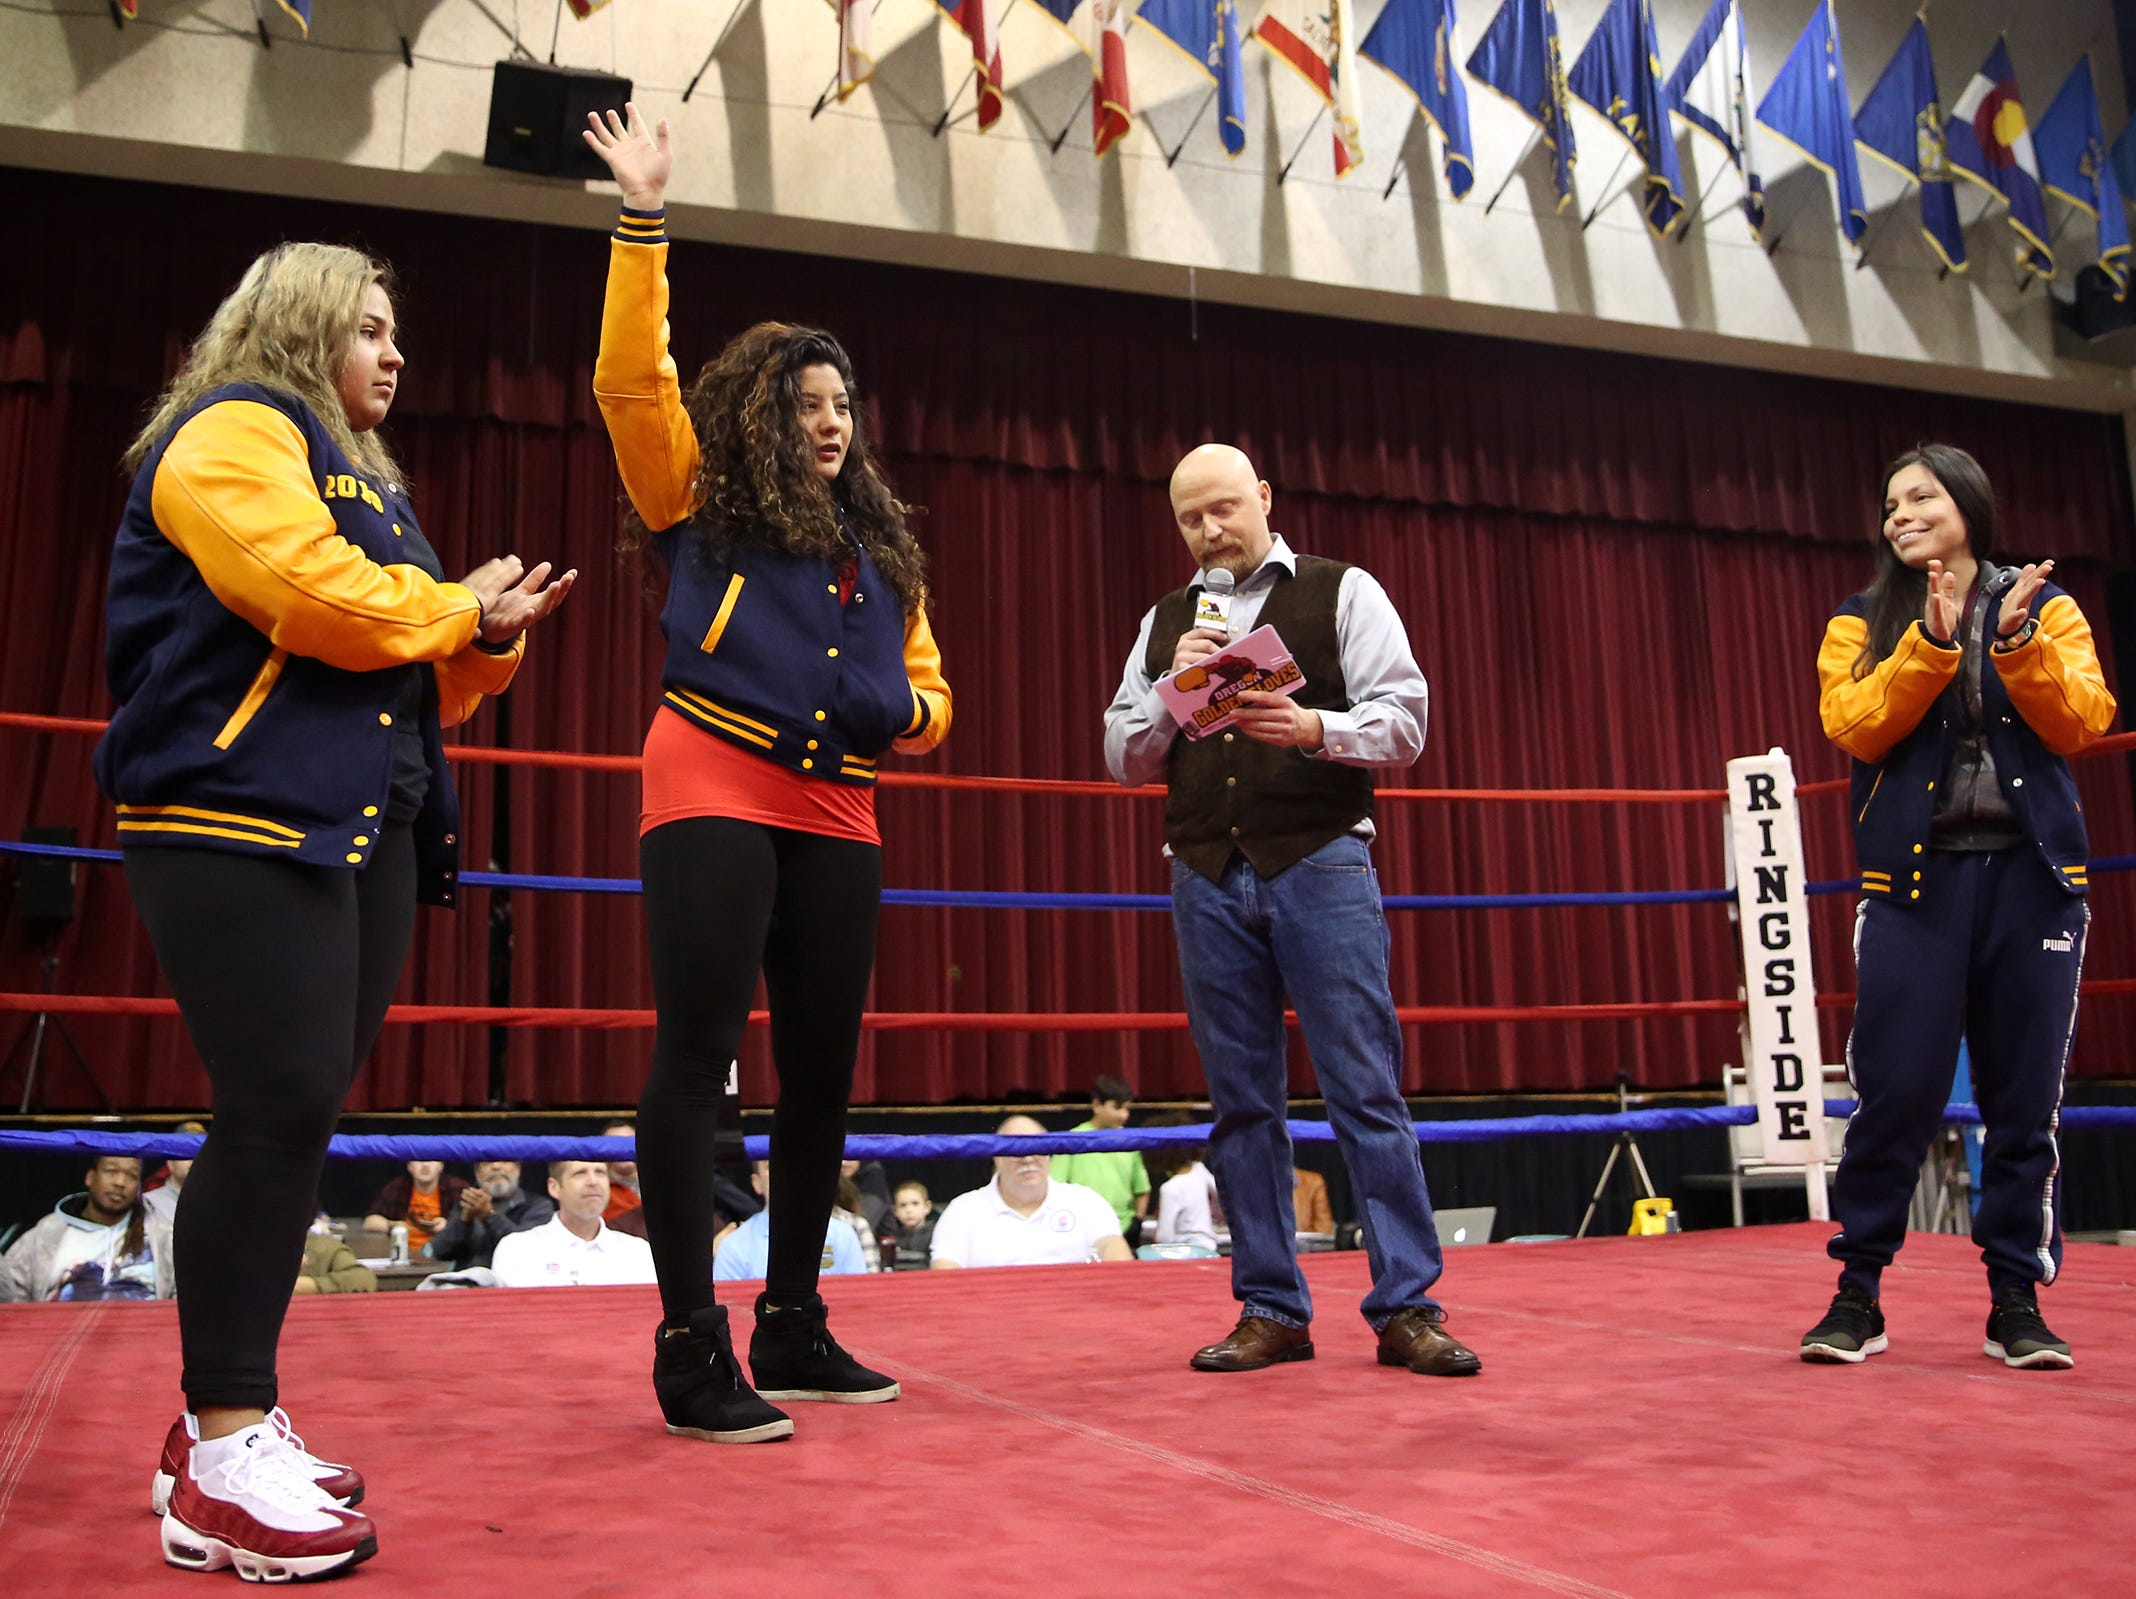 Oregon Golden Gloves female championship winners Angie Ornelas, Diana Estrada and Akayla Devereaux are recognized by director Daniel Dunn at the Salem Armory on Saturday, Feb. 2, 2019.